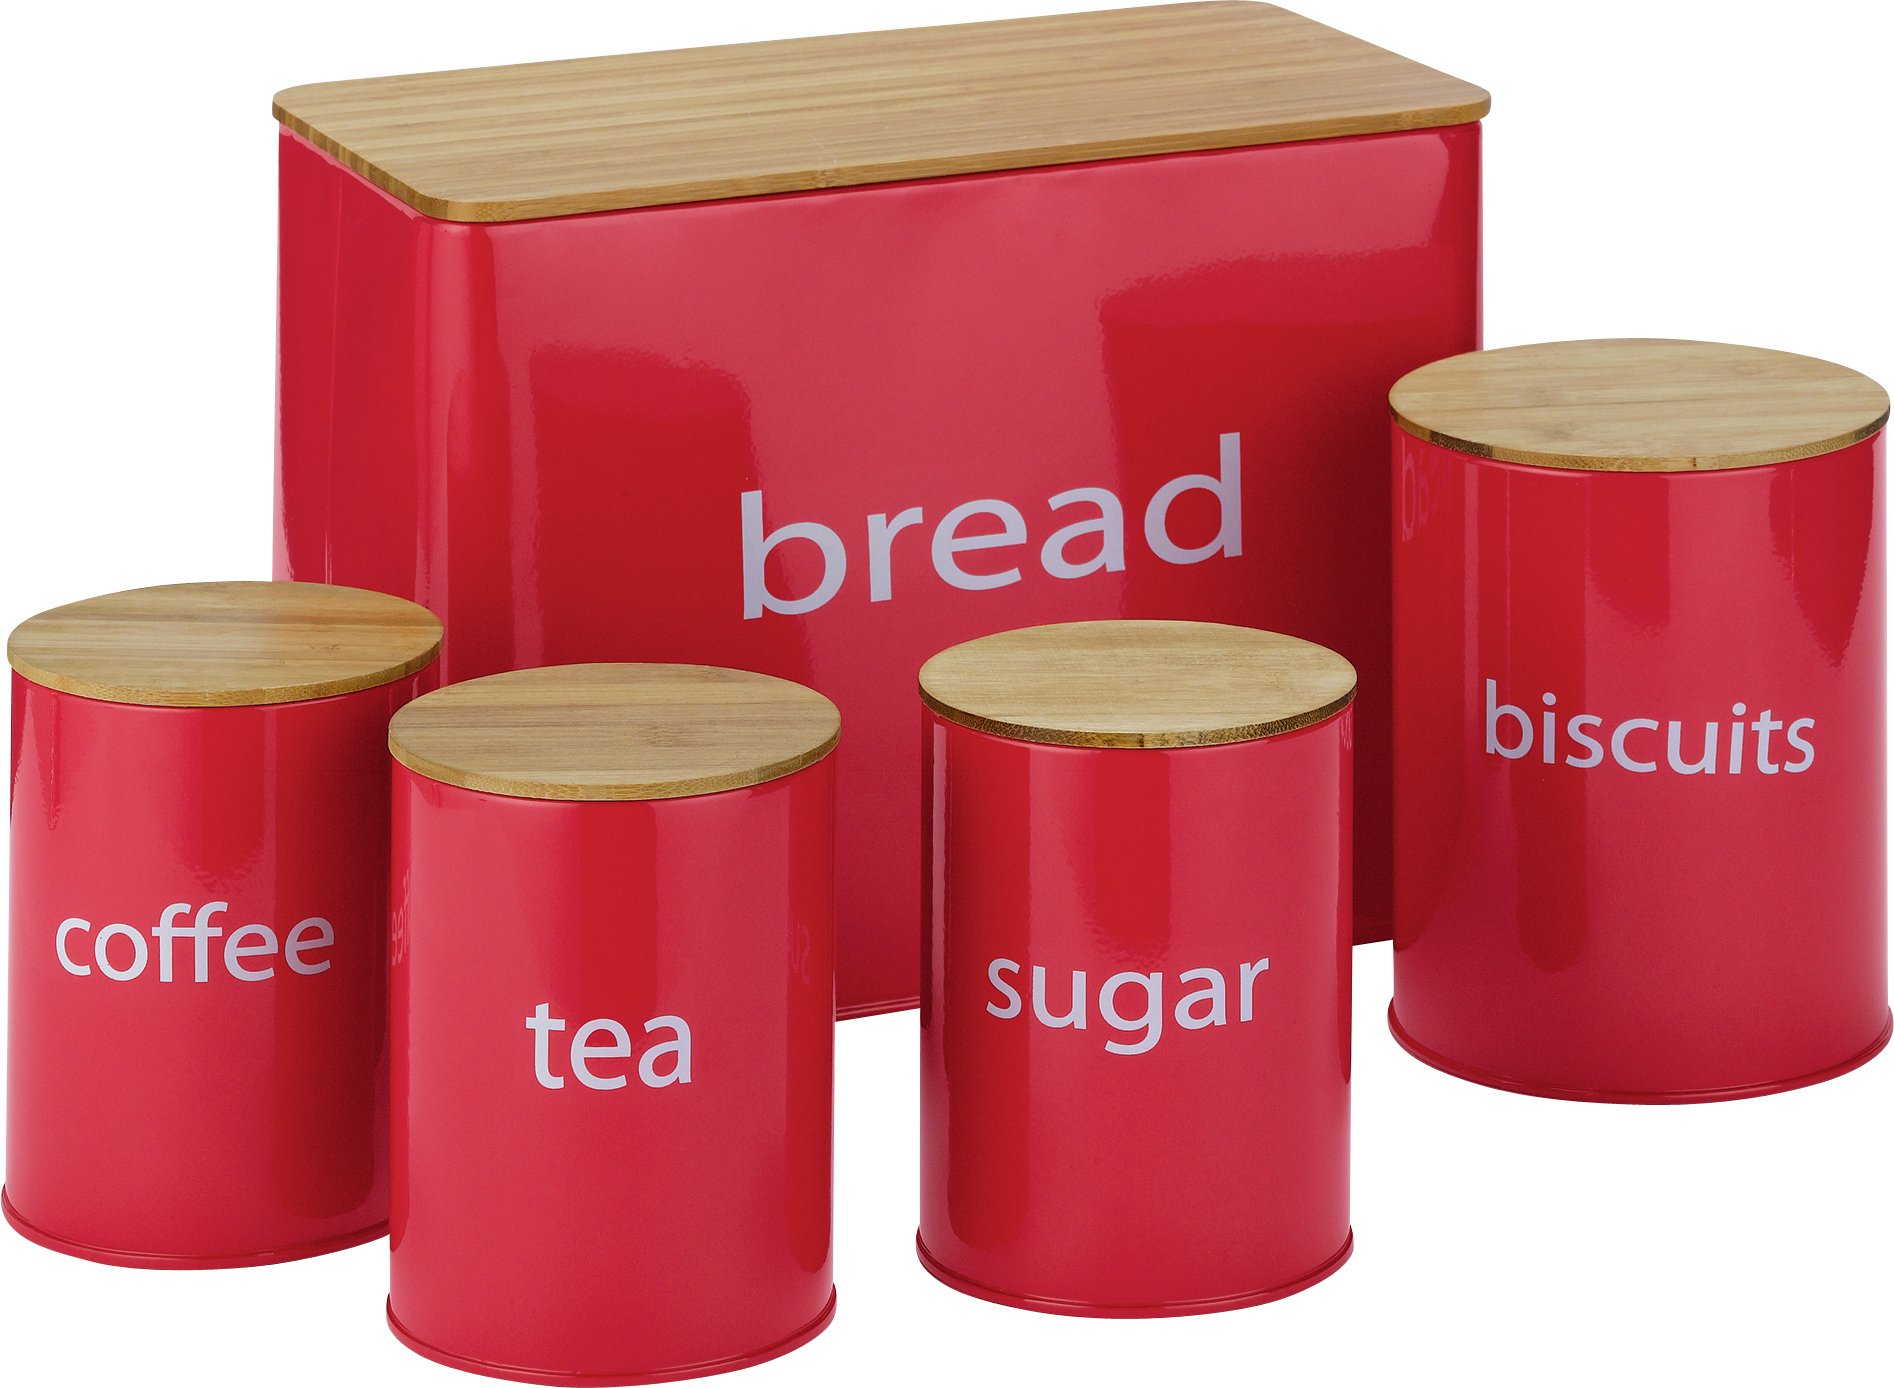 ColourMatch Set of 5 Wooden Lid Storage Jars - Red